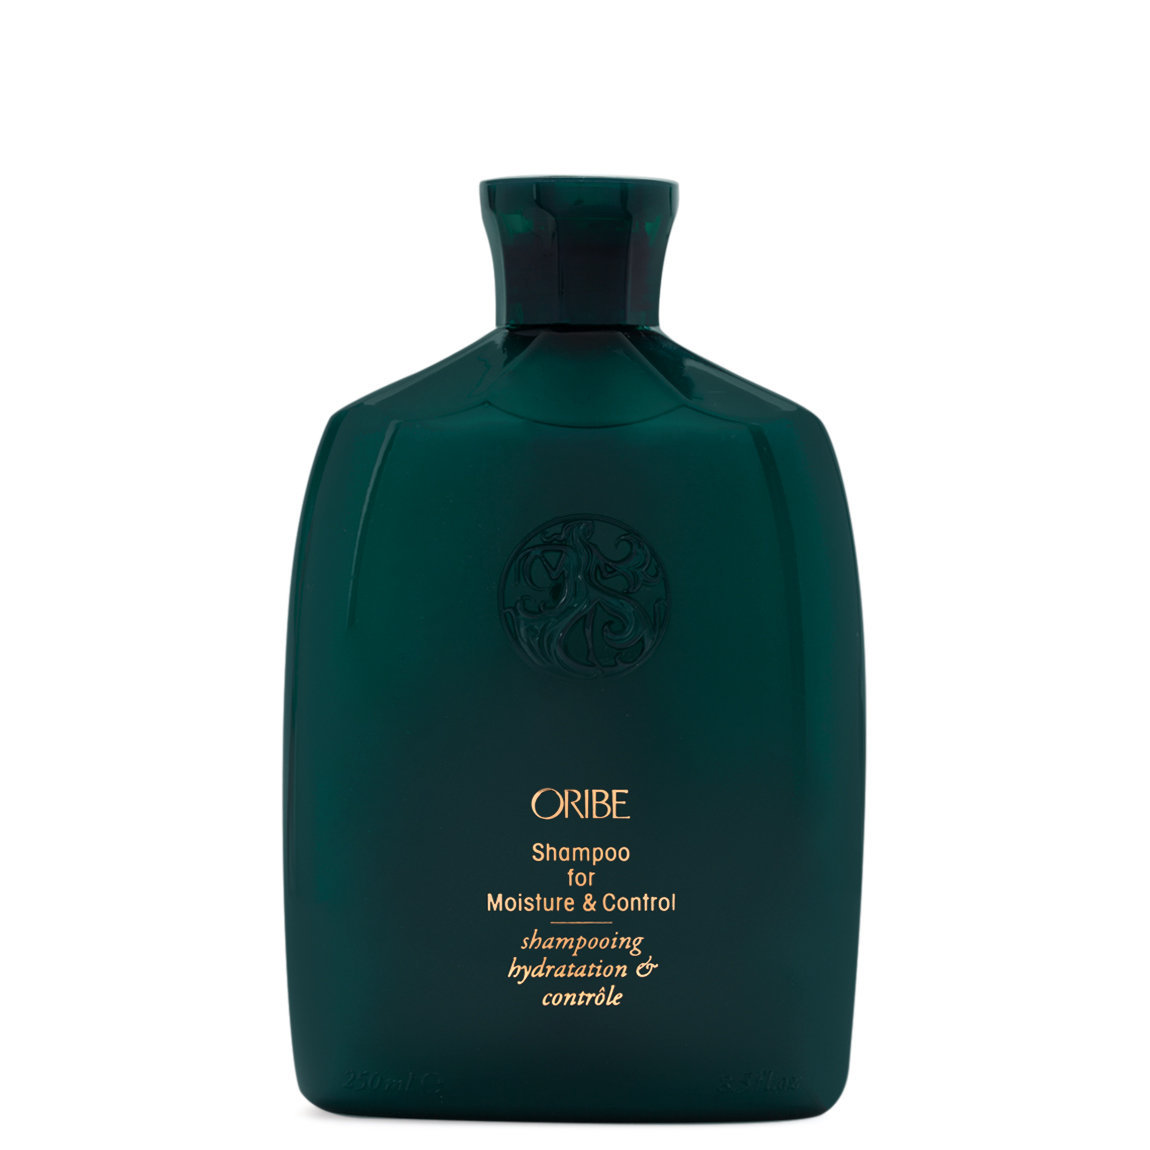 Oribe Shampoo for Moisture & Control product swatch.